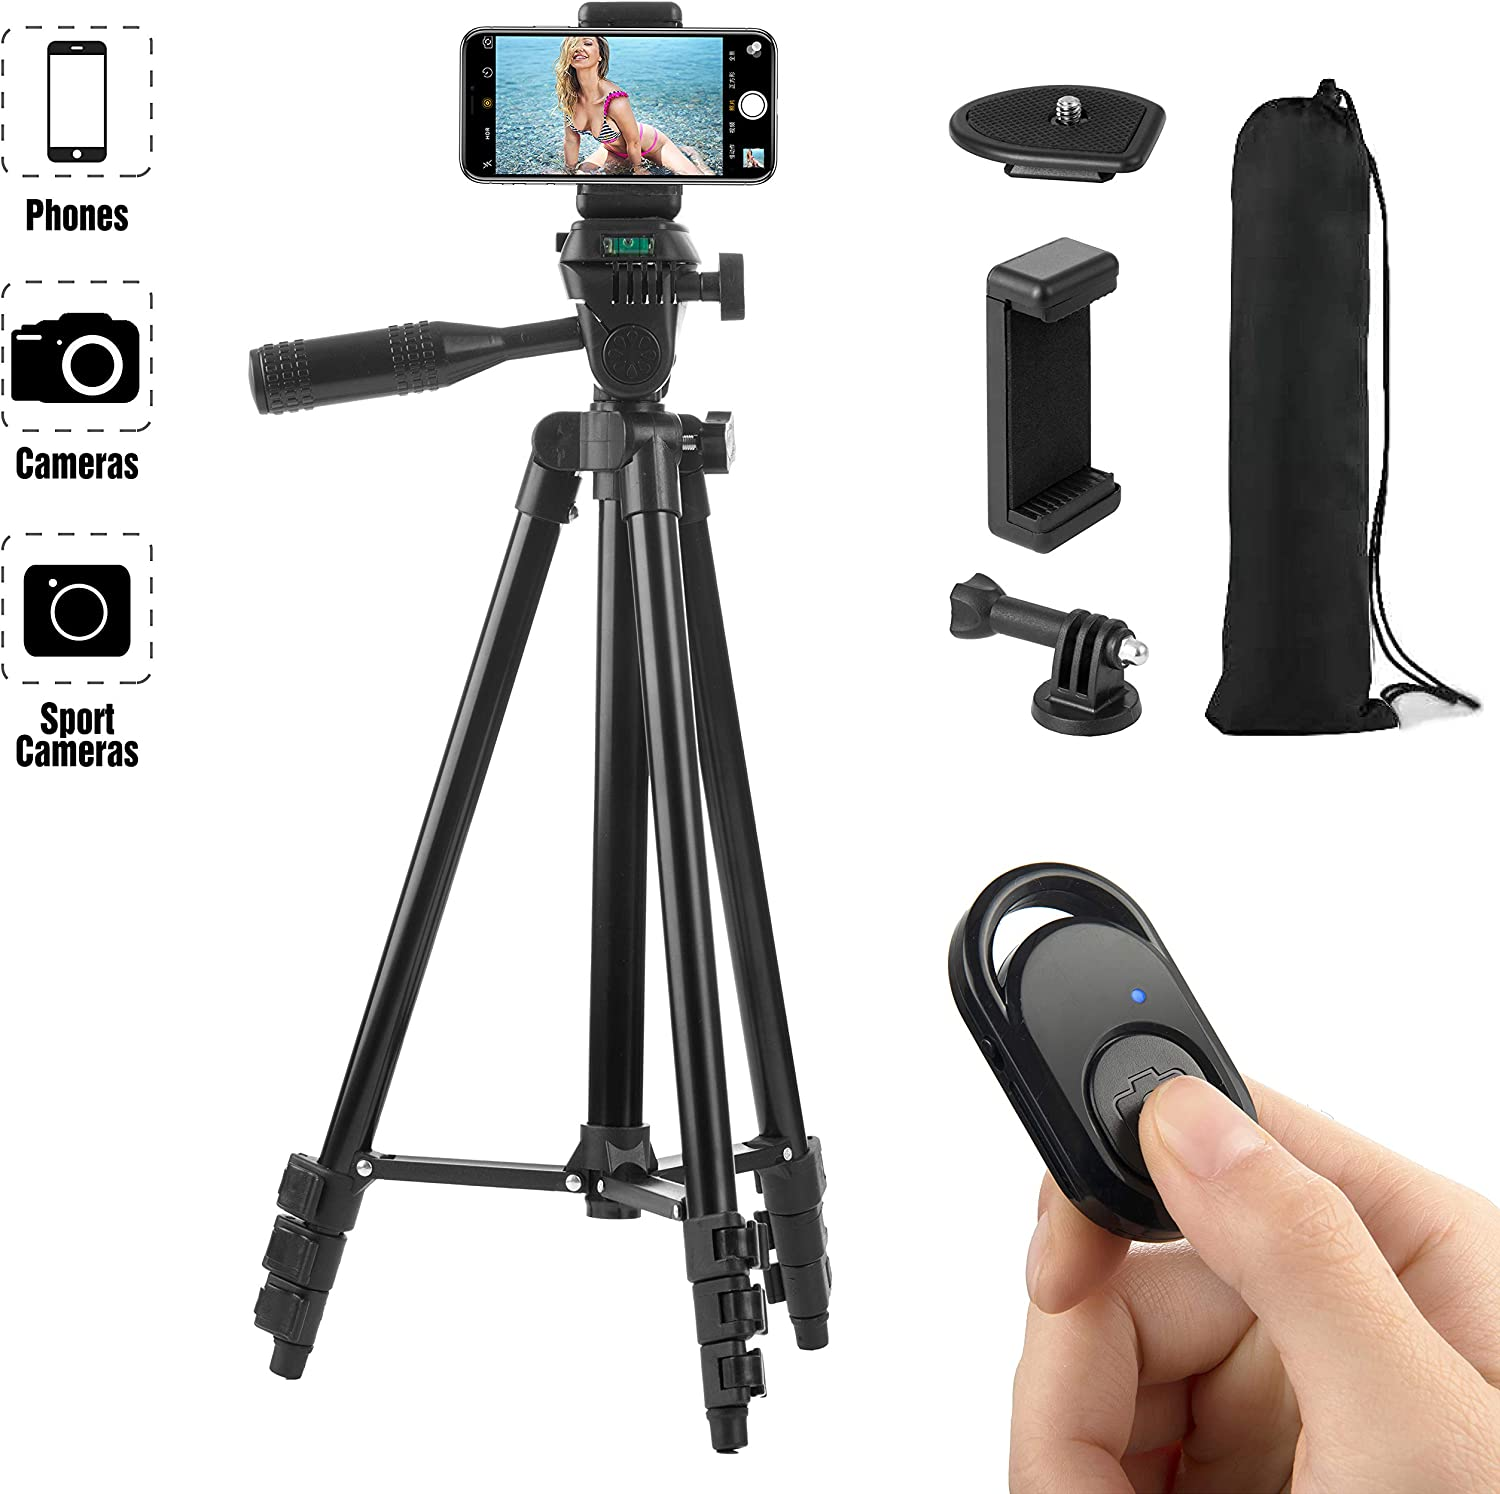 Hitch Phone Tripod, Gopro Tripod 51 Inch 130cm Aluminum Lightweight Smartphone Tripod for iPhone/Samsung/Huawei Cellphone, Camera and Gopro with Bluetooth Remote Control, Carrying Bag and Gopro Mount